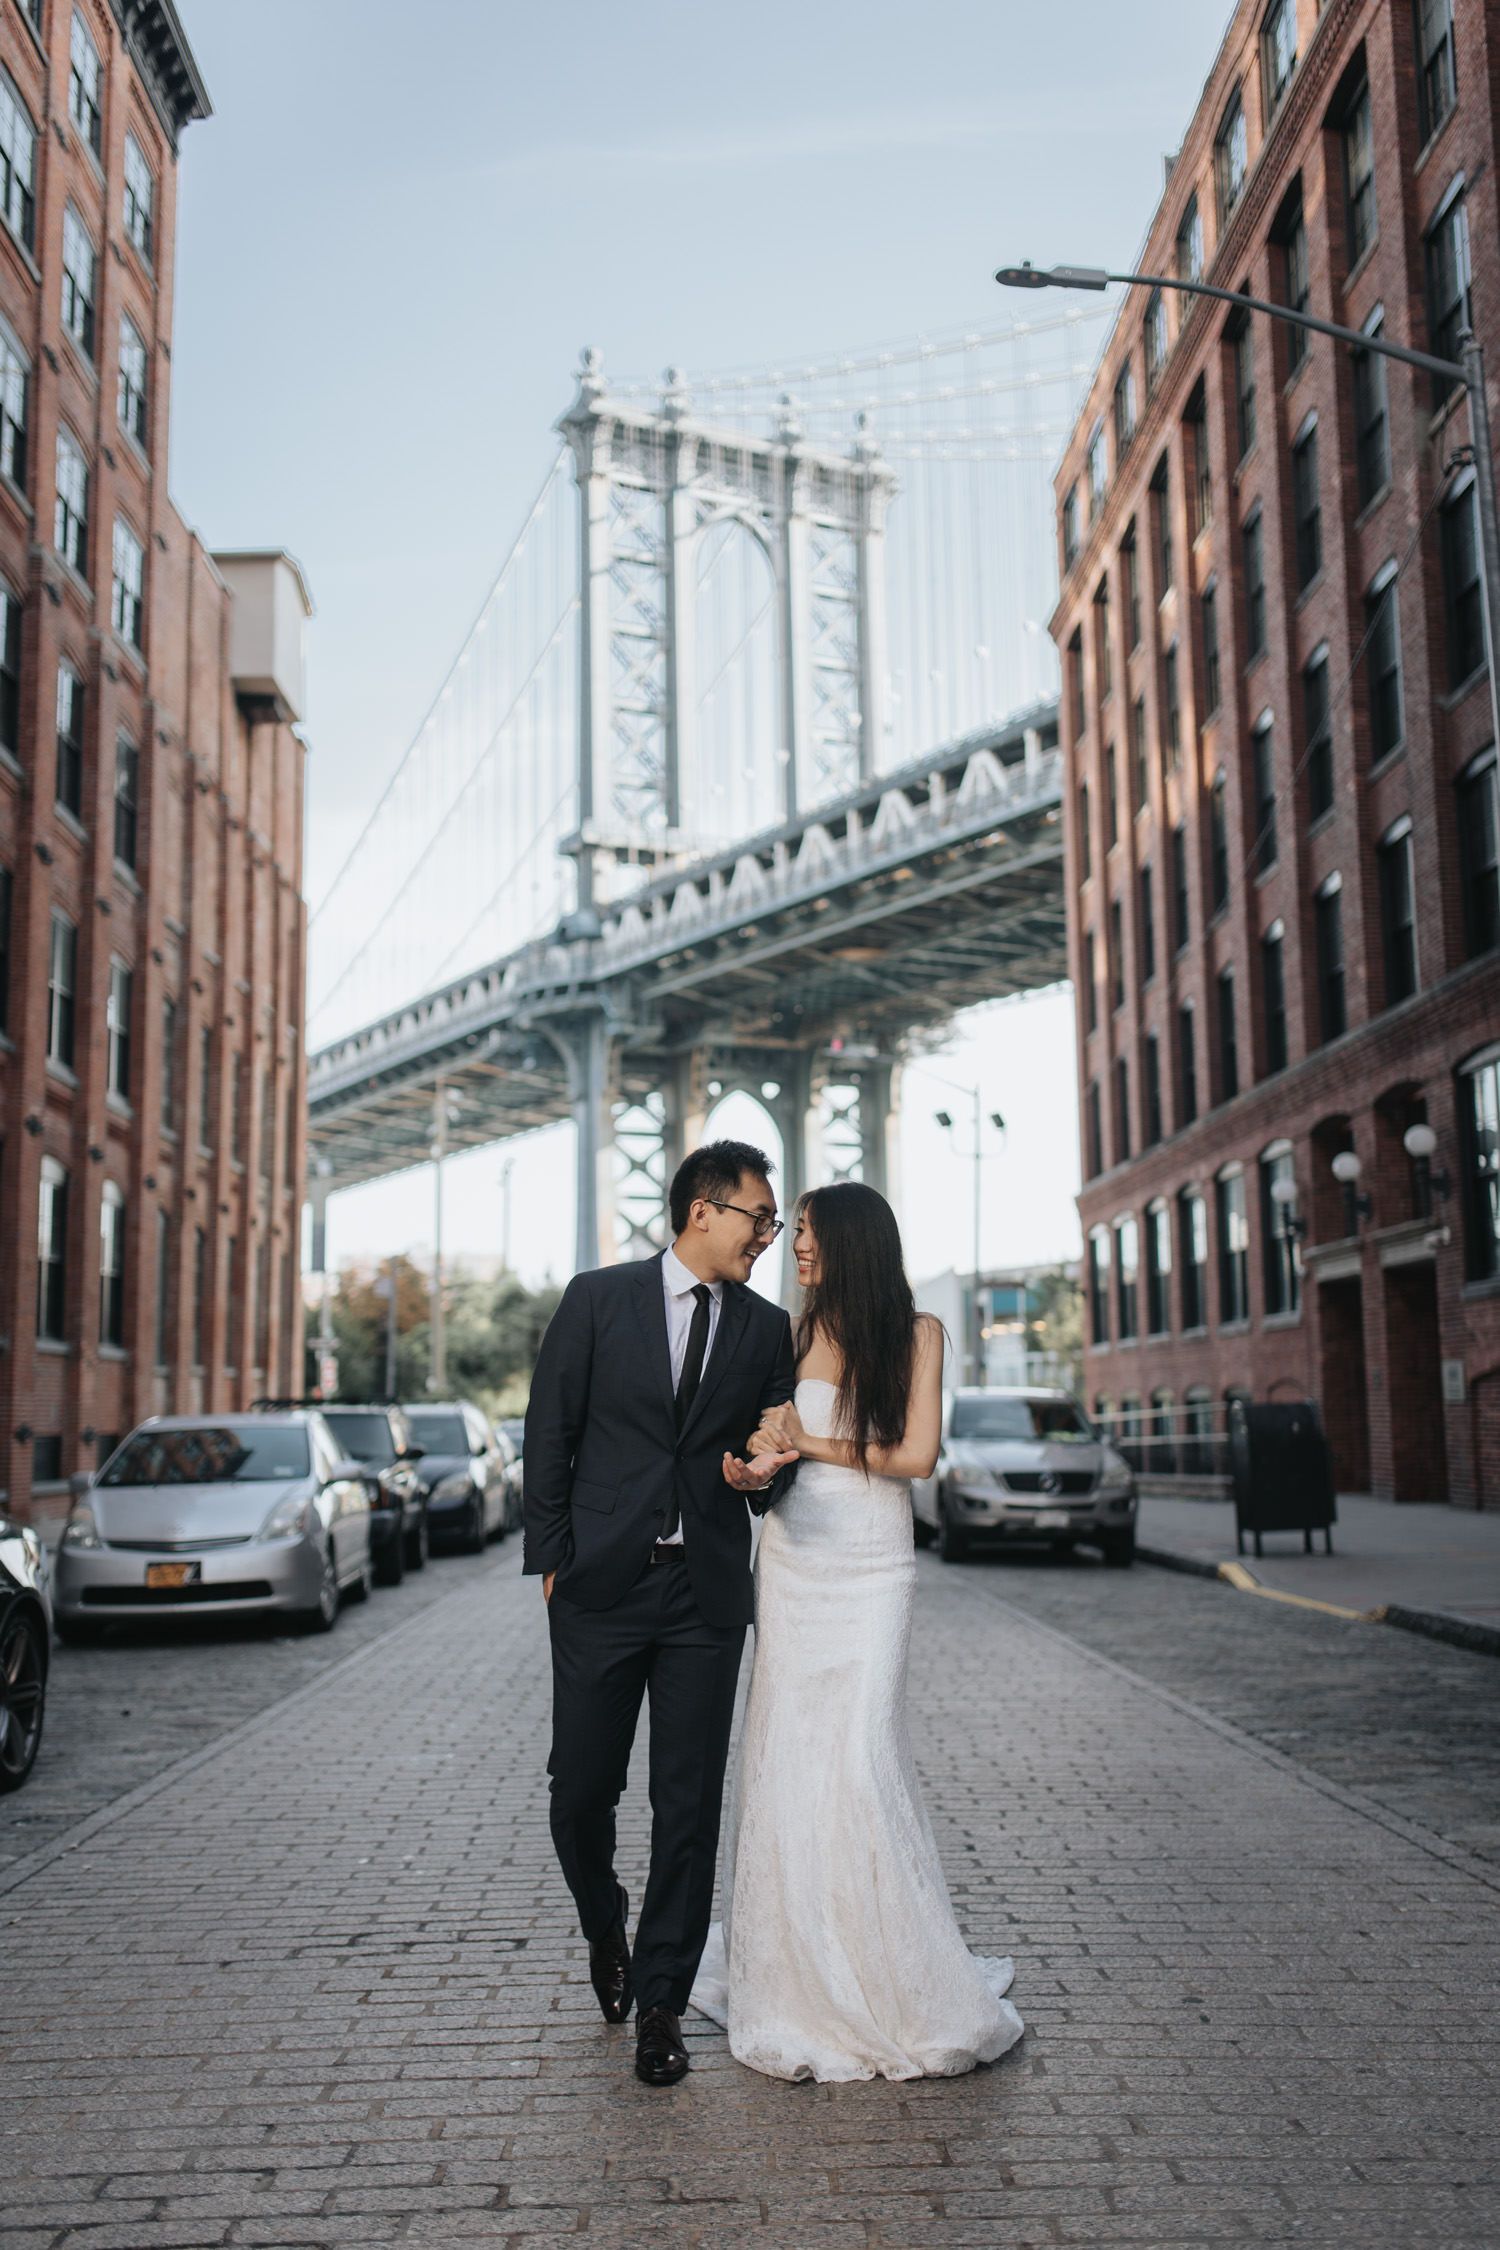 Brooklyn Dumbo Engagement Session under the Manhattan Bridge